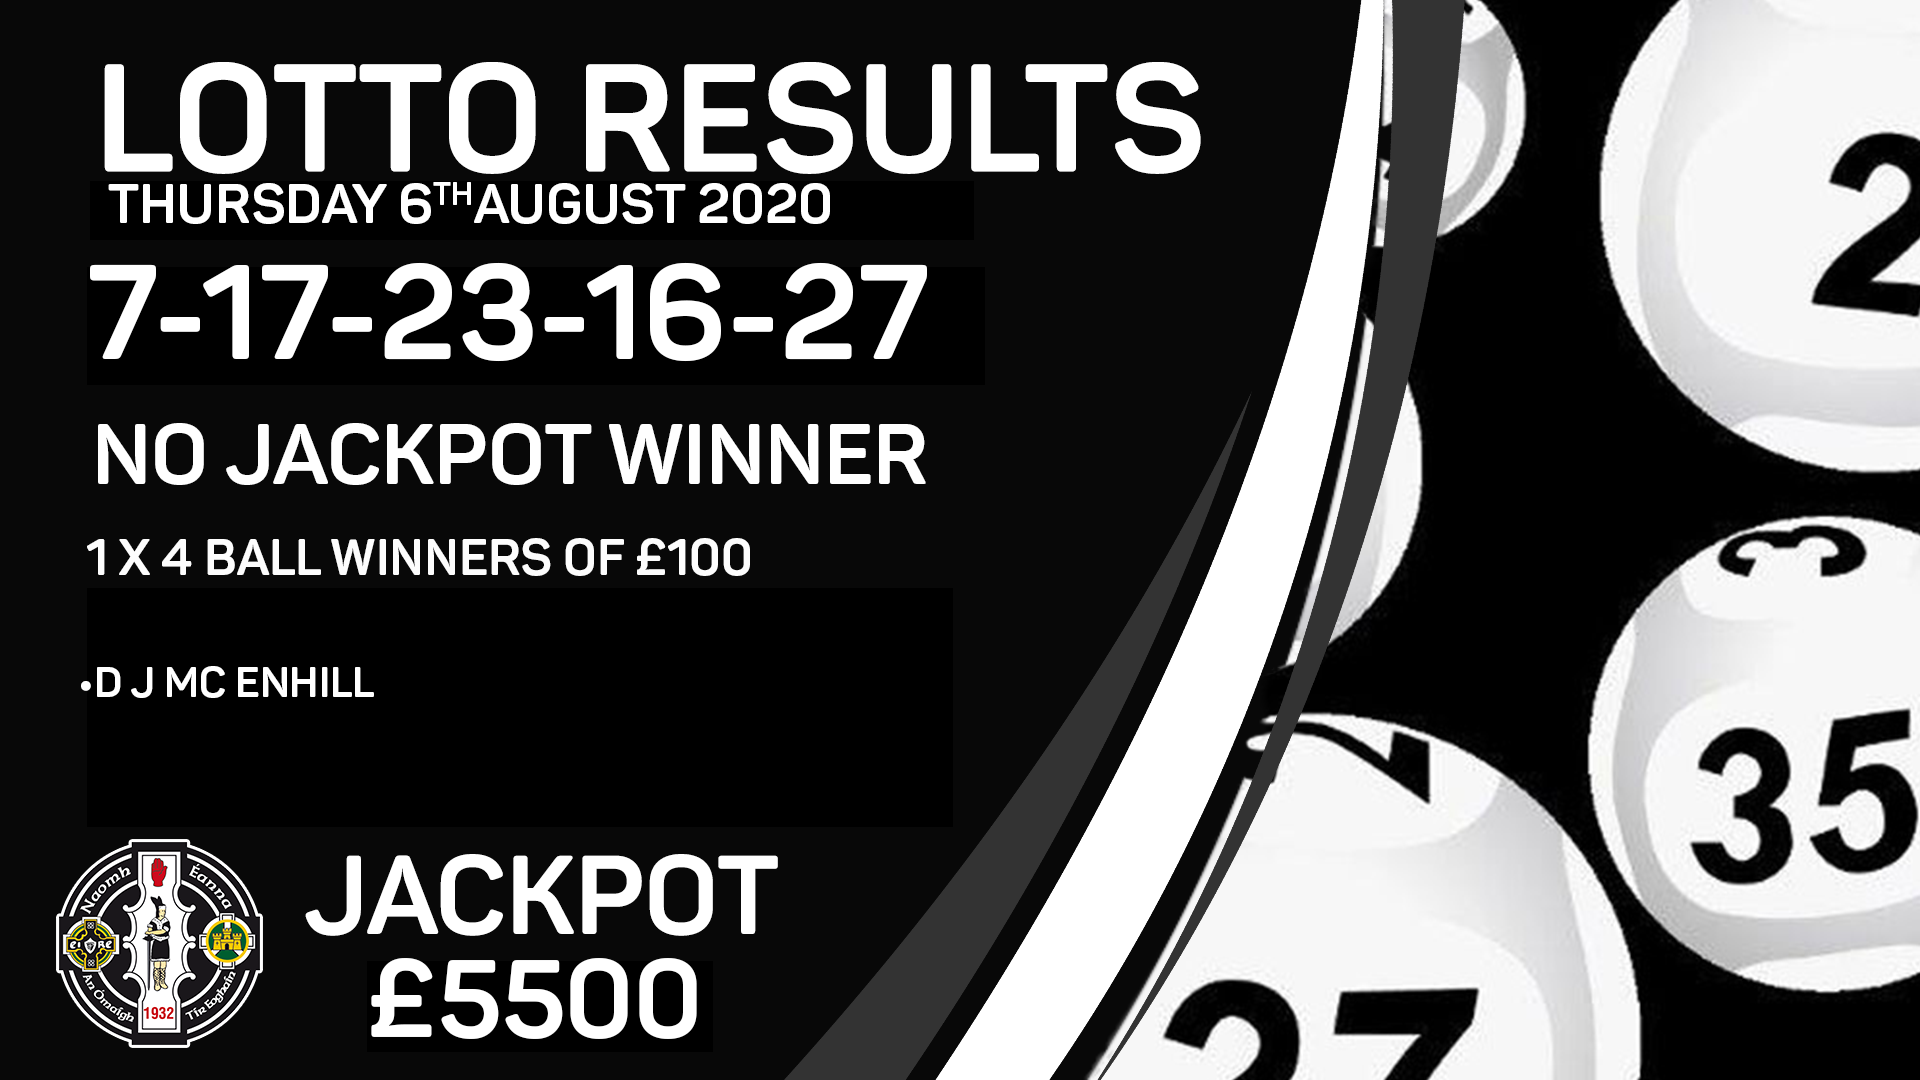 Lotto Results – Thursday 6th August 2020